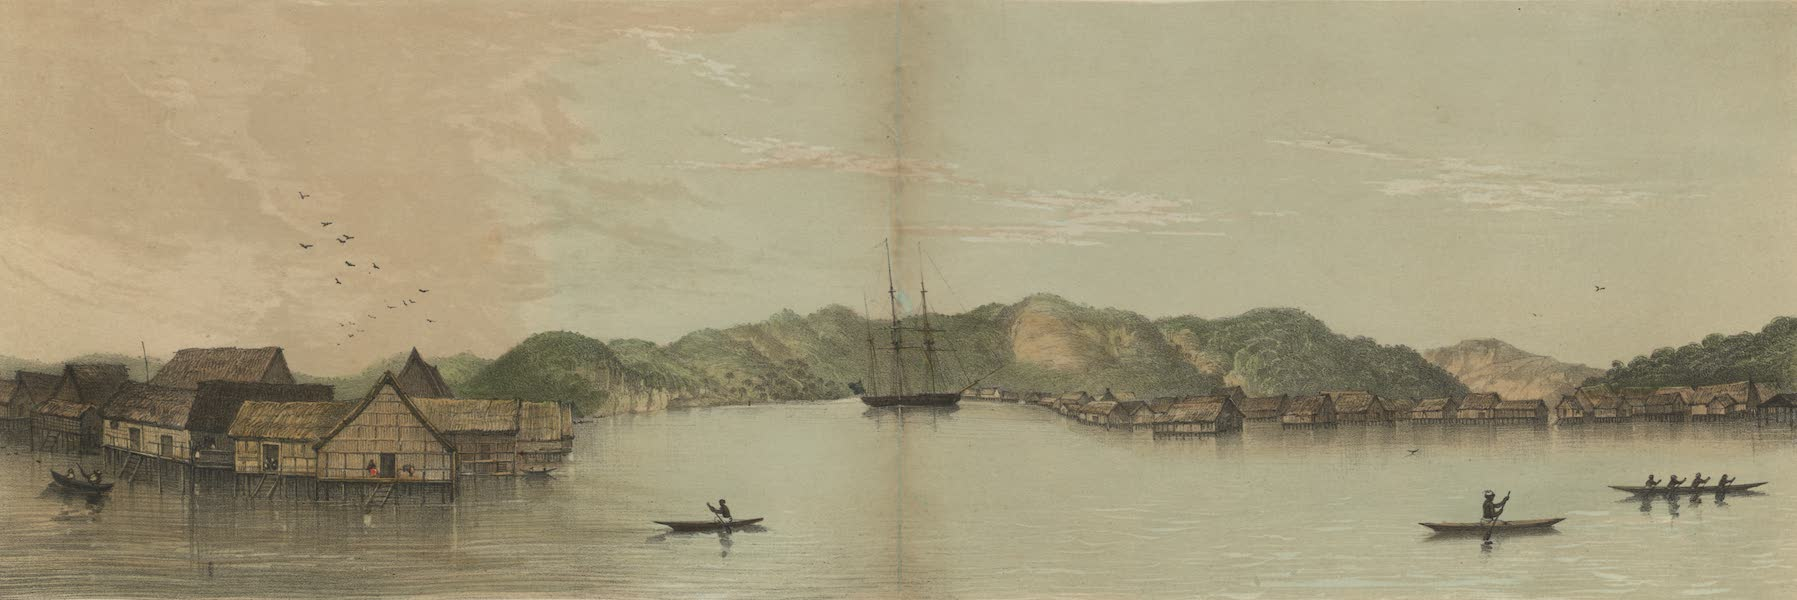 Views in the Eastern Archipelago - View looking down the river. Borneo Proper (1847)